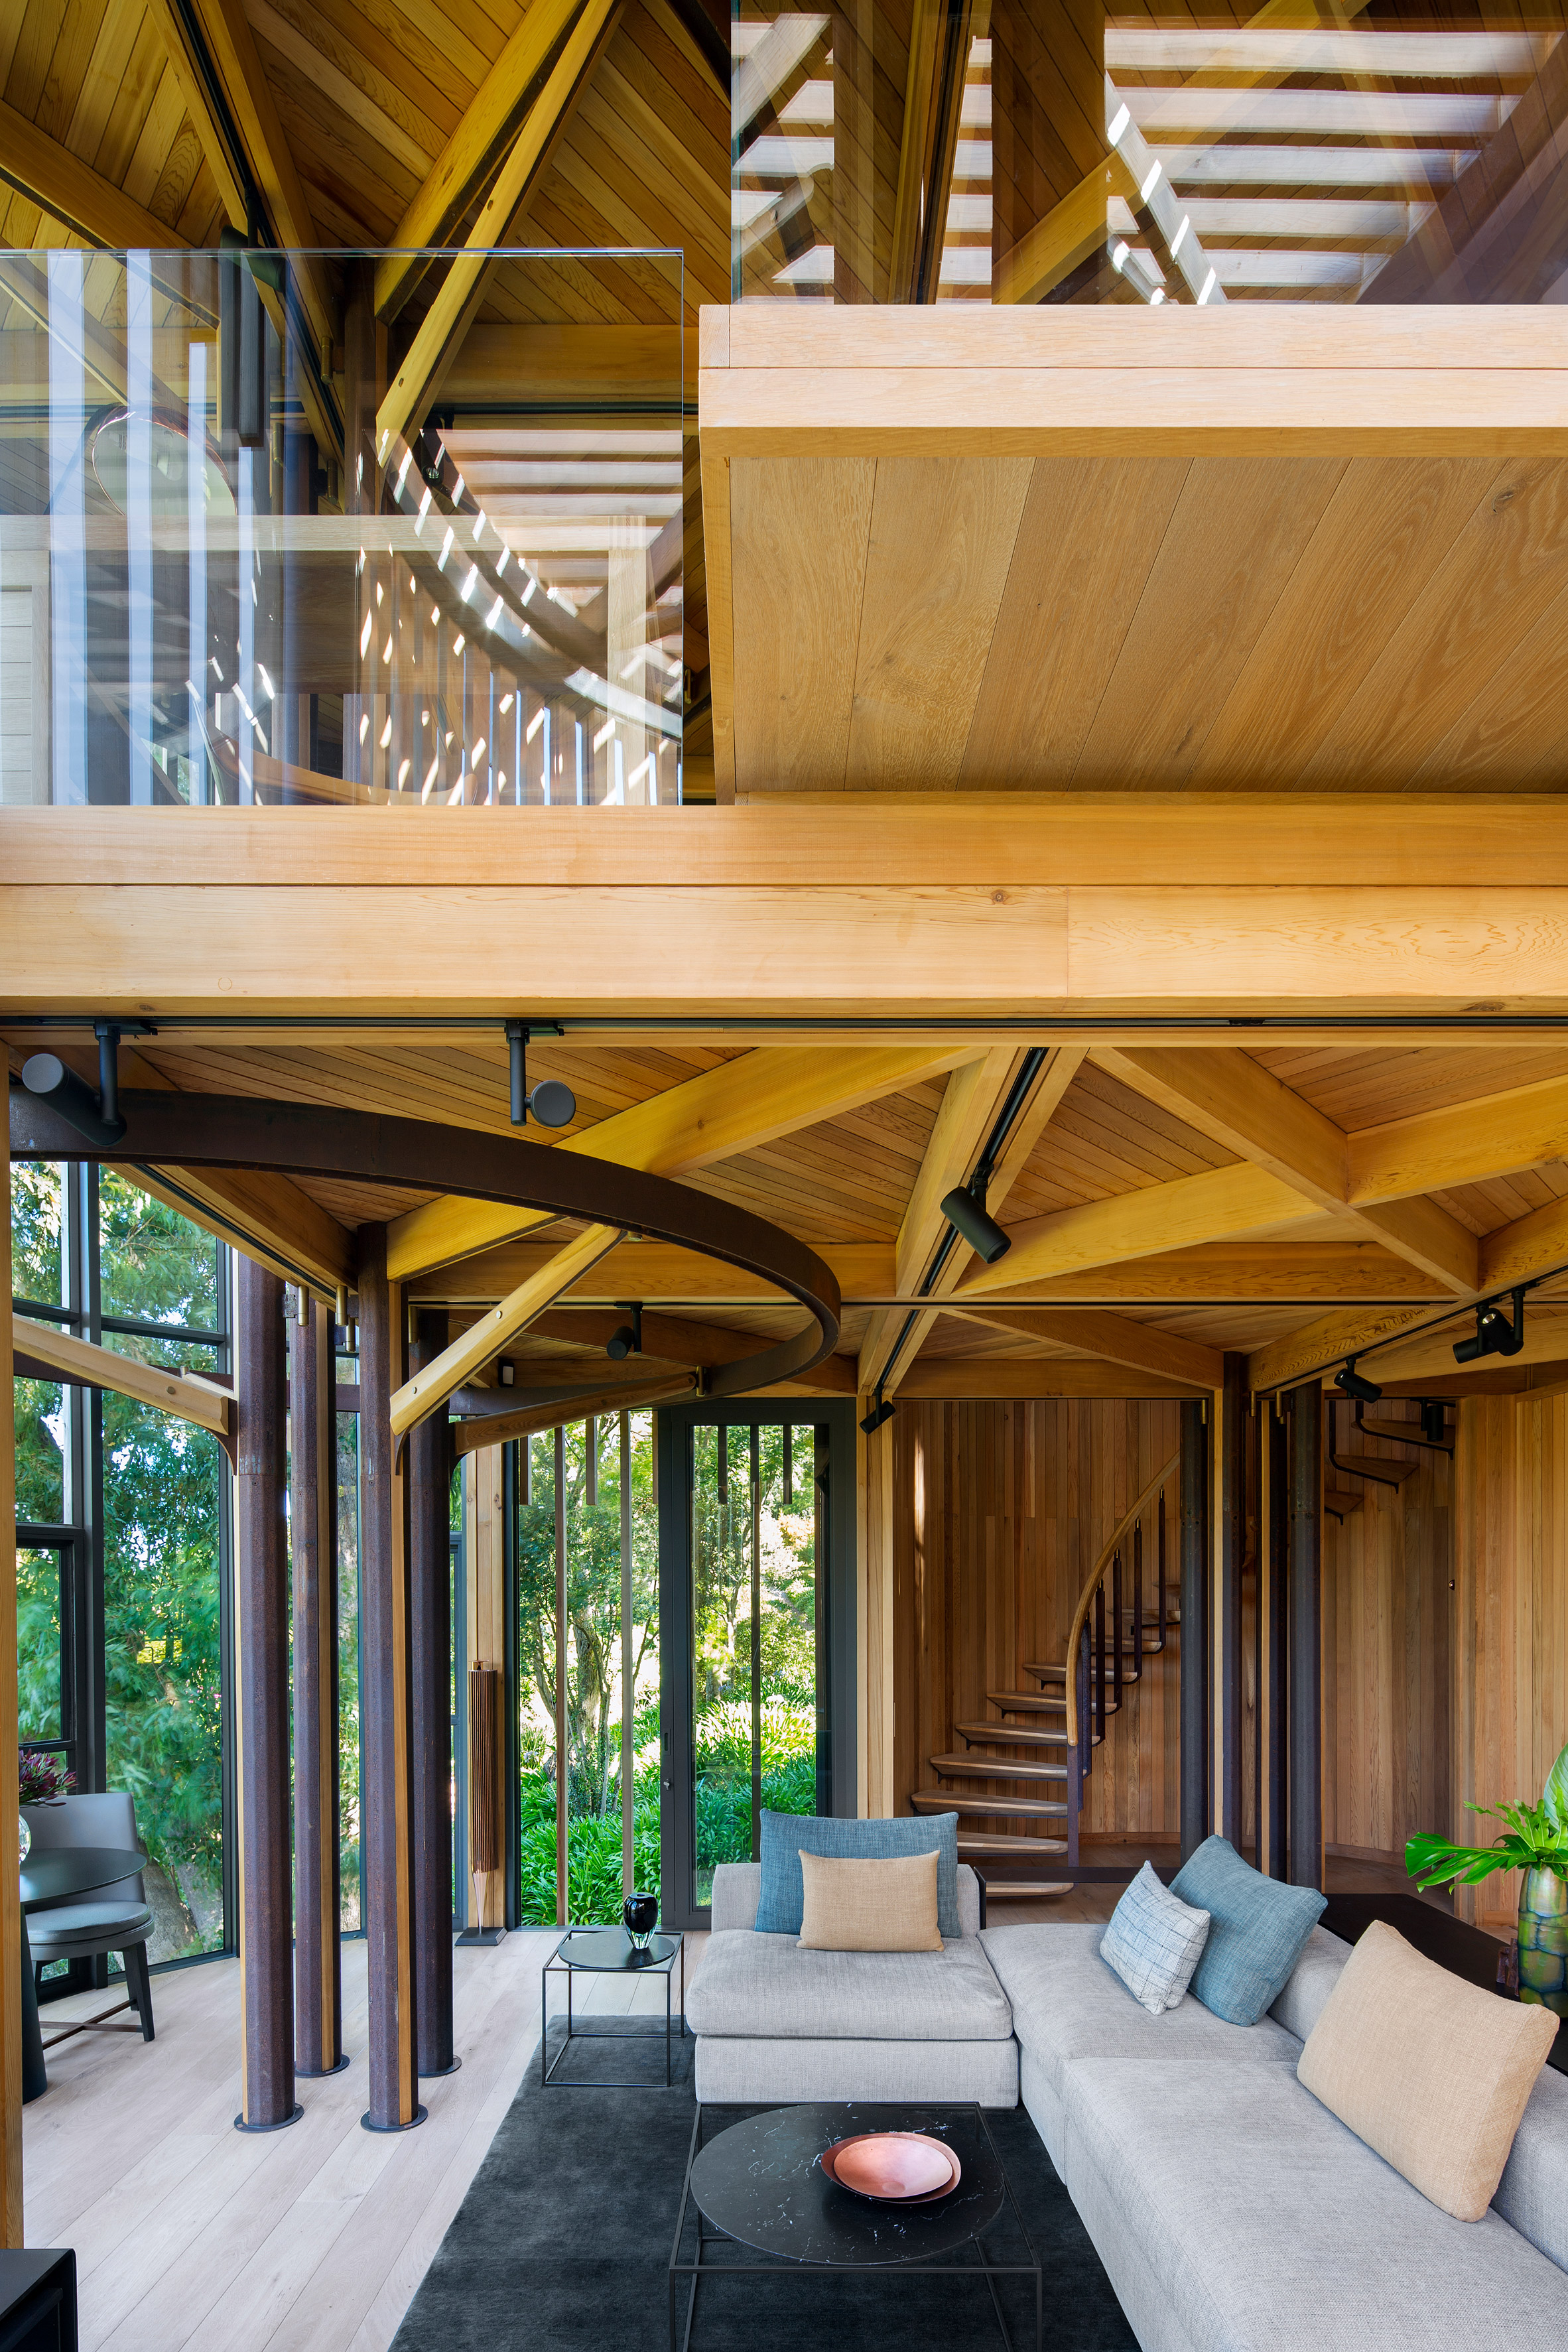 paarman-tree-house-by-mv-architecture-residential_dezeen_2364_col_4.jpg